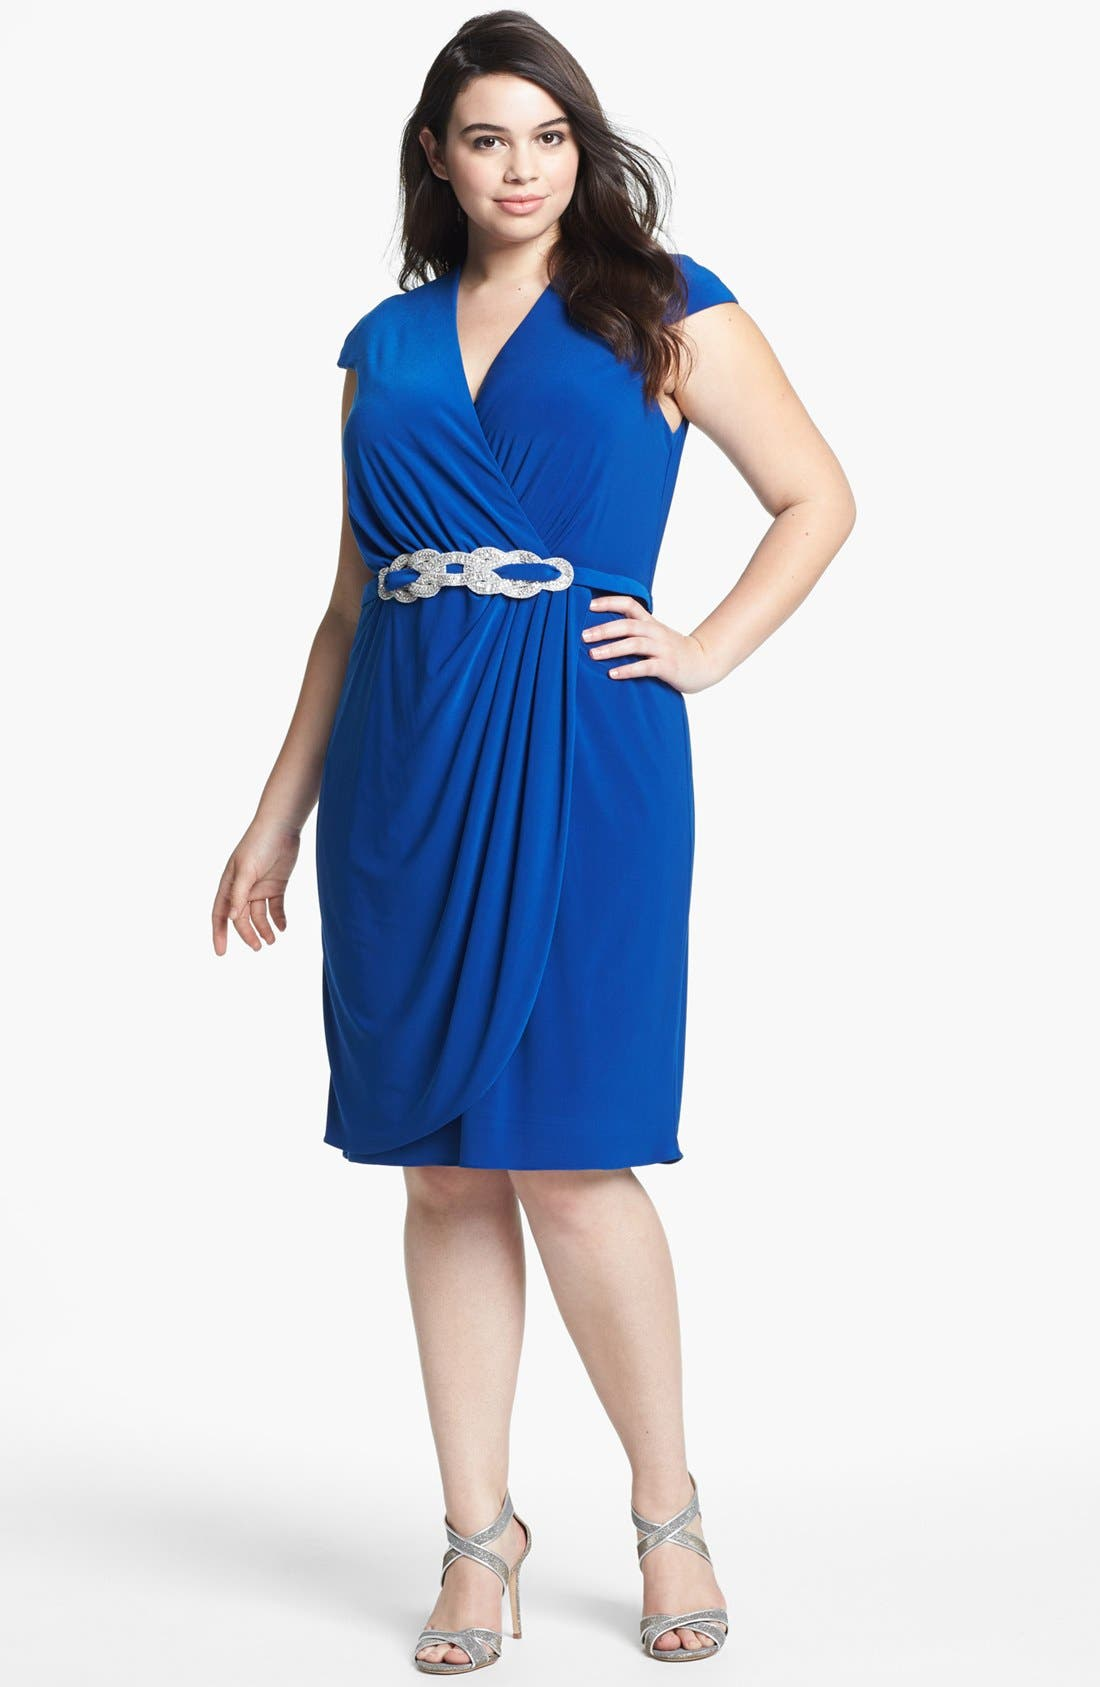 Alternate Image 1 Selected - Alex Evenings Embellished Faux Wrap Dress (Plus Size)